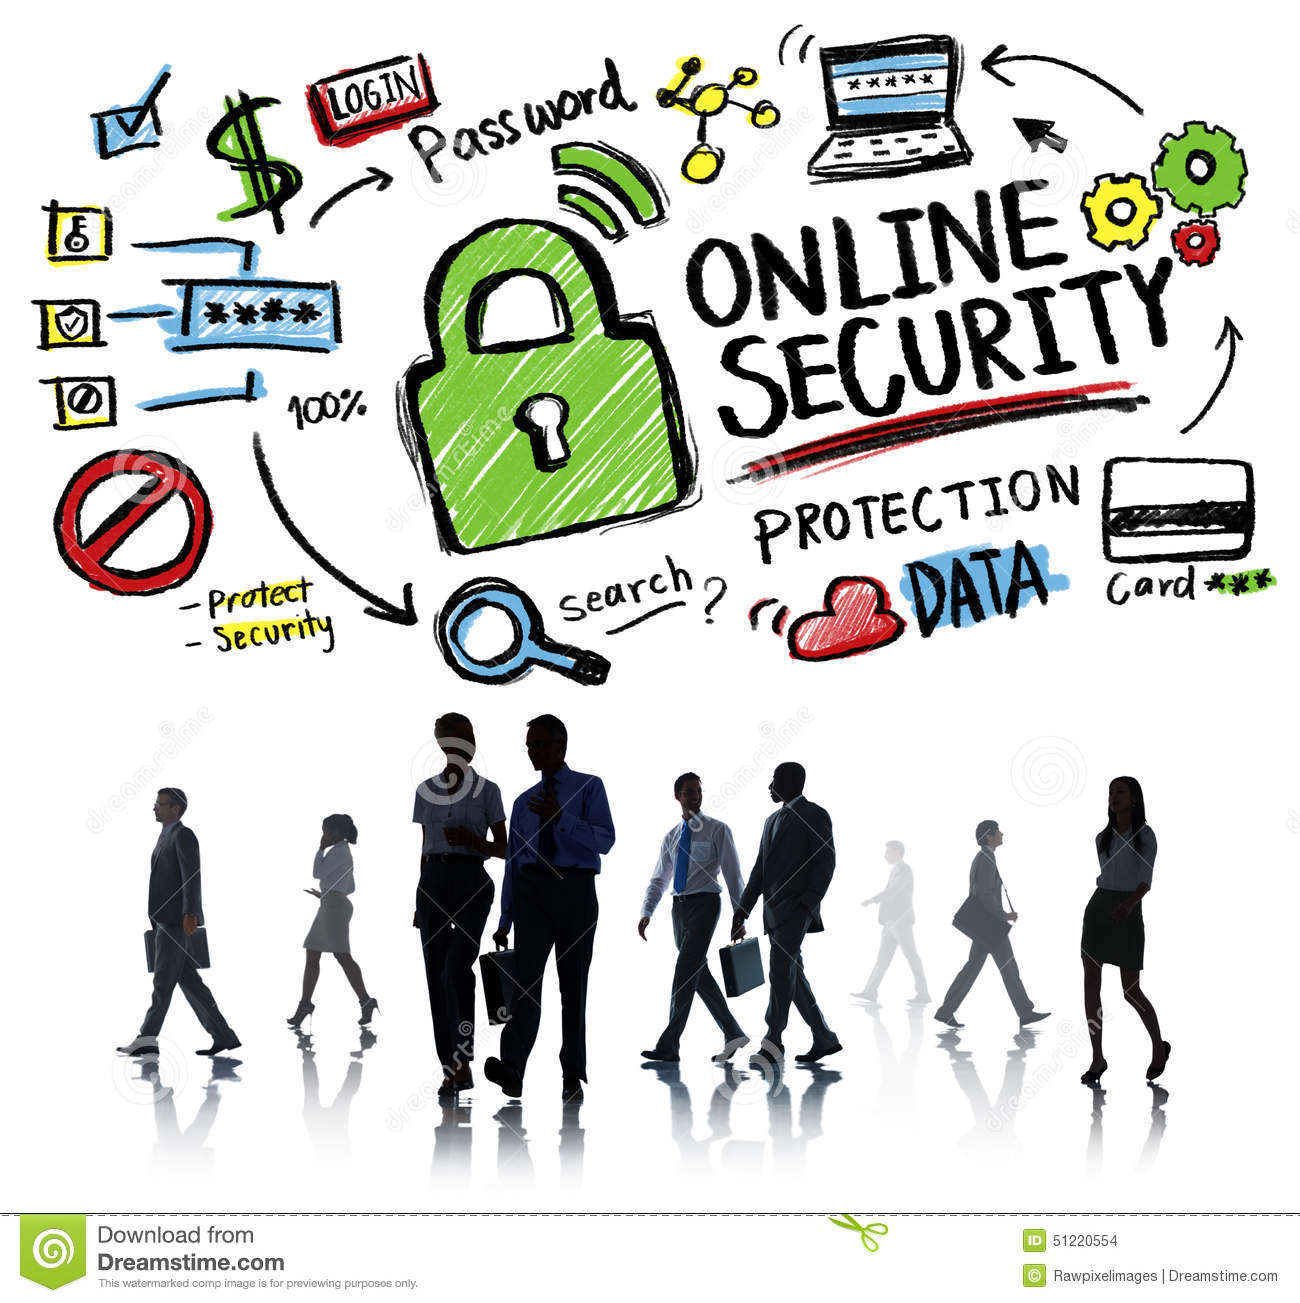 How to date online safely in Melbourne